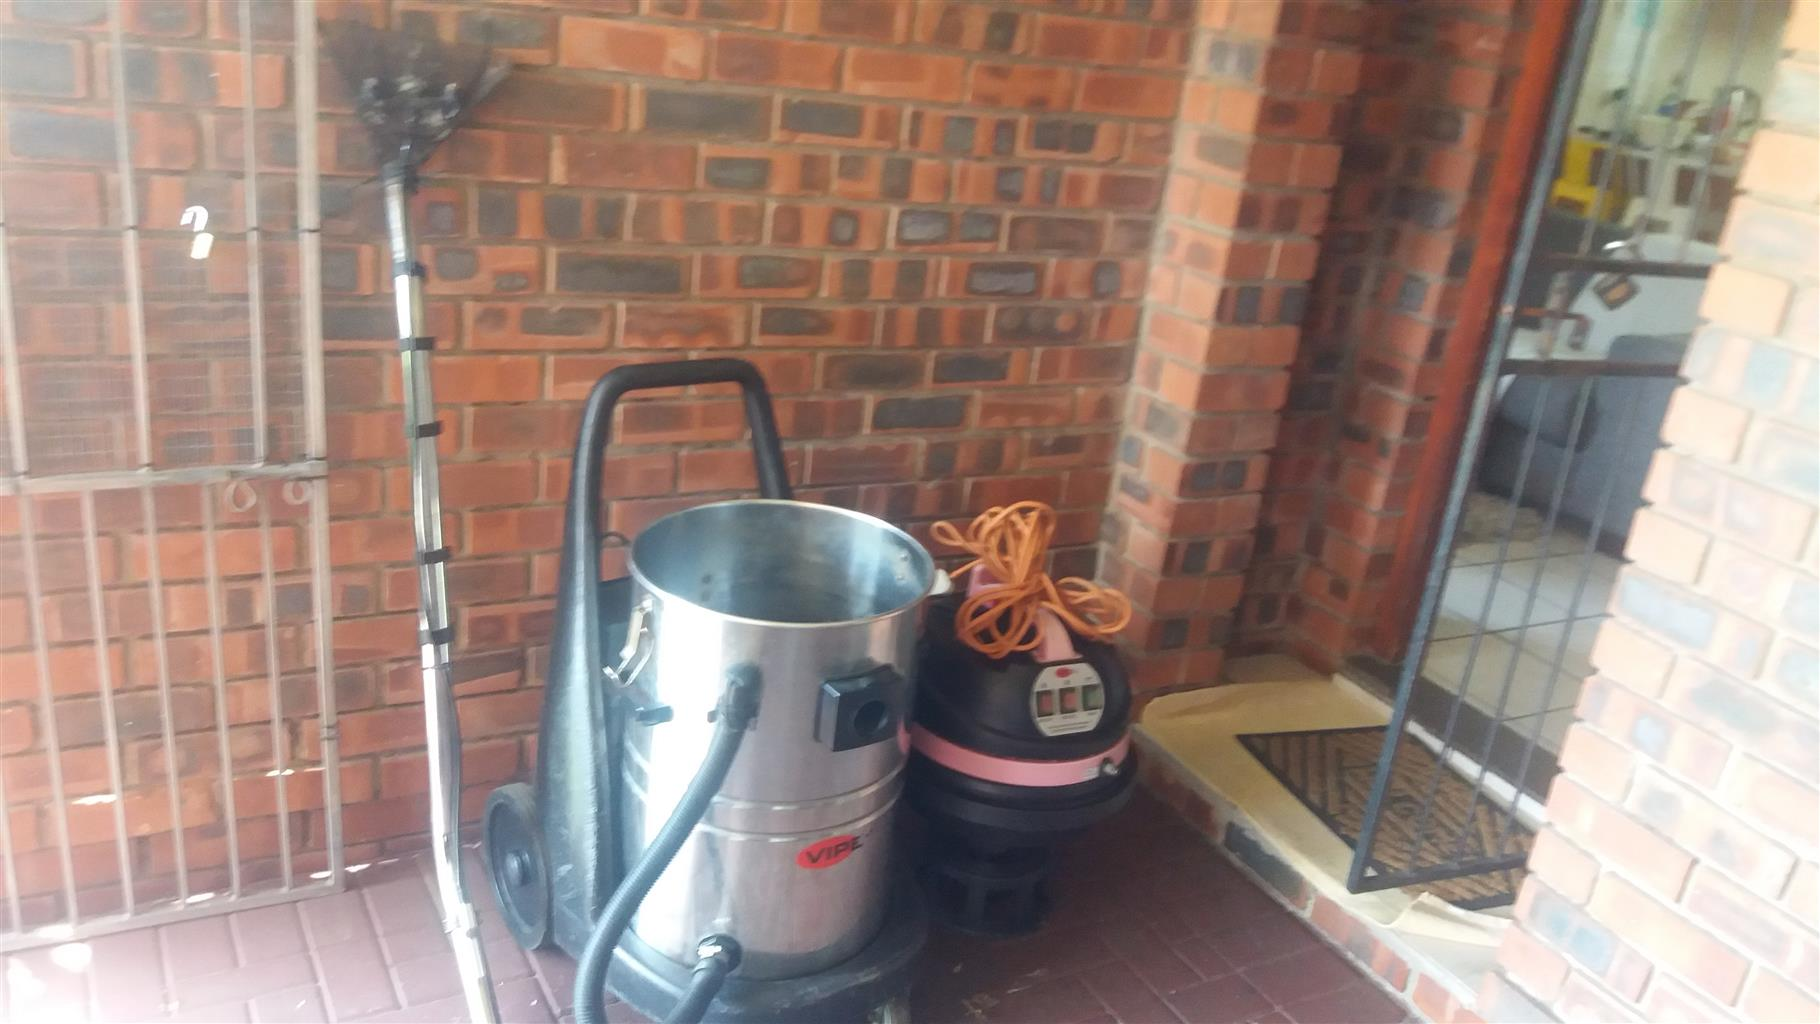 Viper  Industrial Carpet and Upholstery carpet cleaning machine